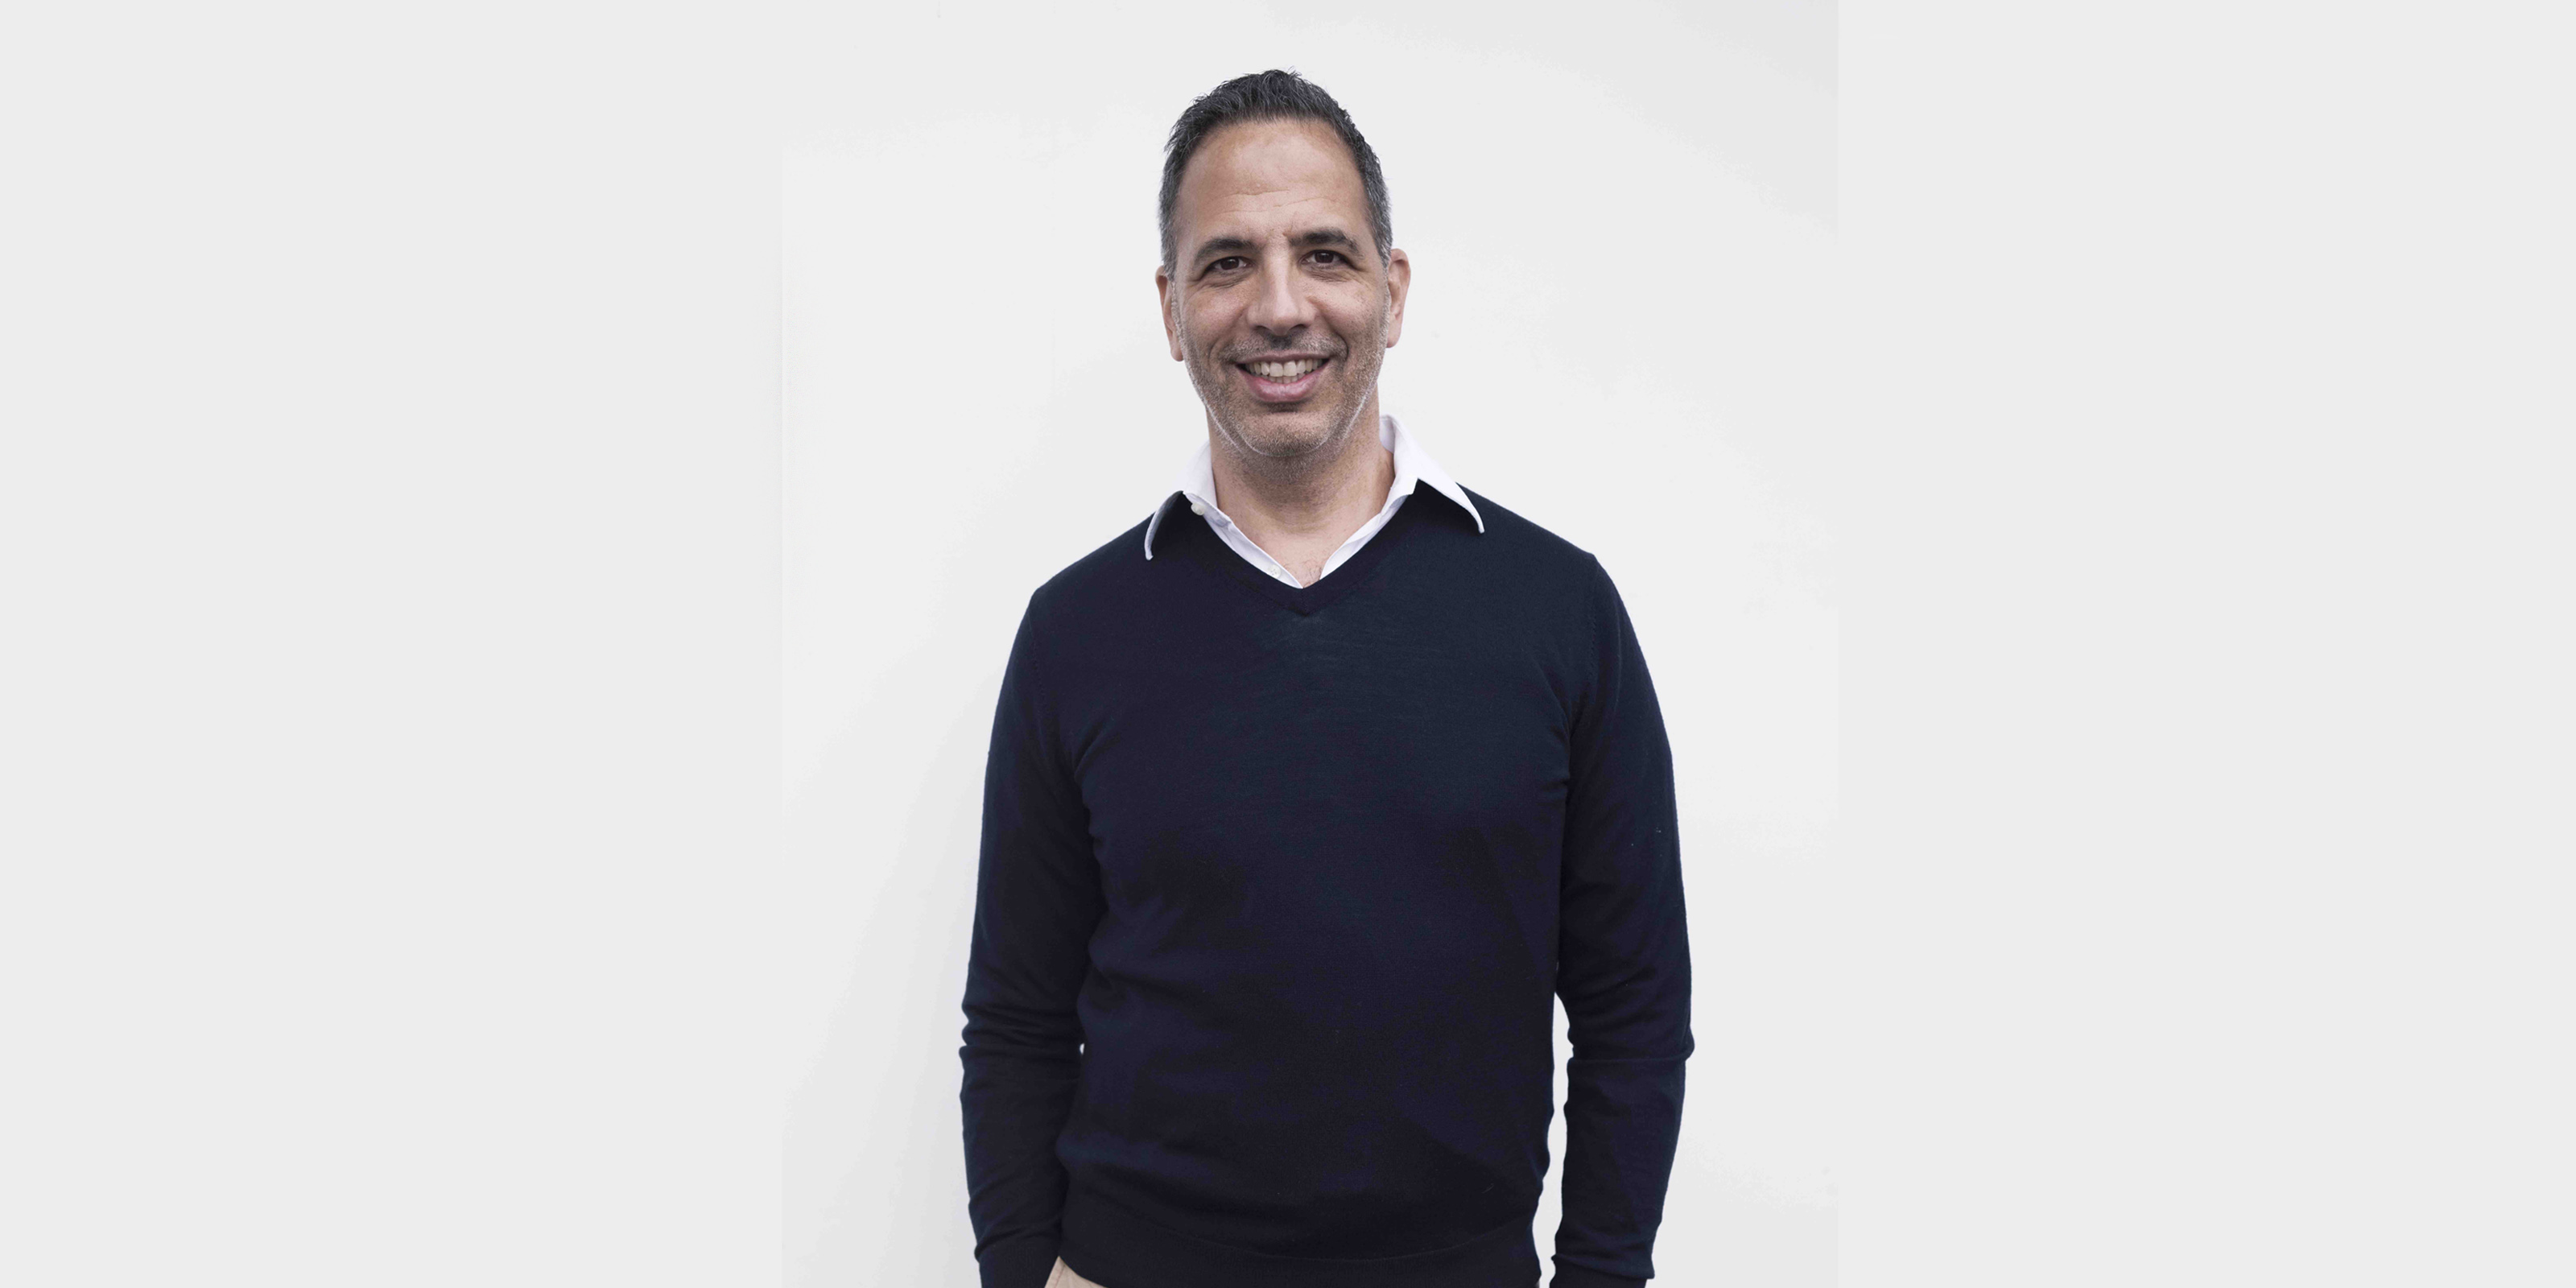 Five things you may not know about Yotam Ottolenghi